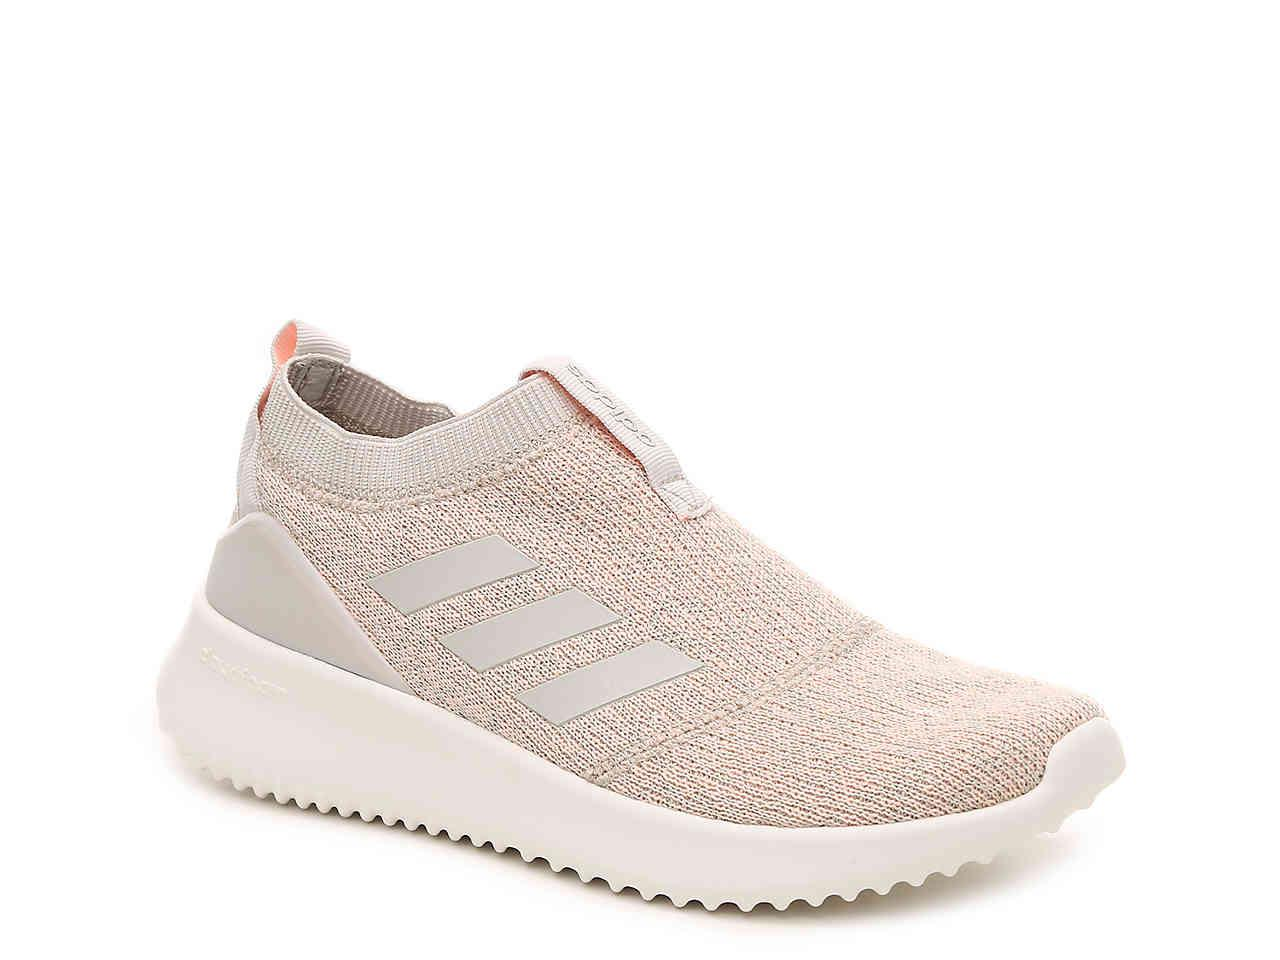 adidas Synthetic Ultimafusion Slip-on Sneaker in Grey/Light Pink ...